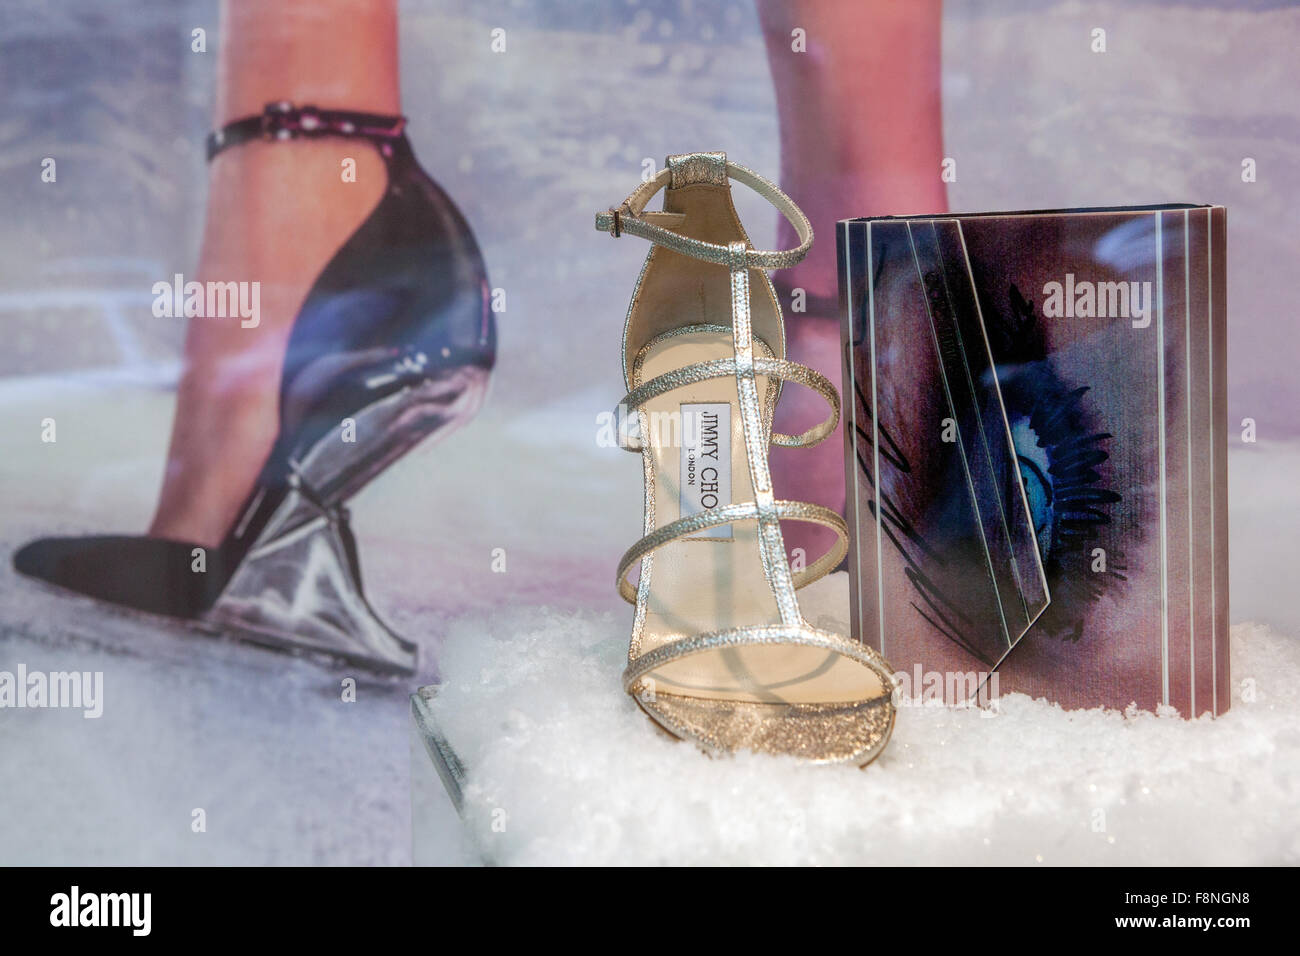 Jimmy Choo high heels, shoes, luxury store, window display in Parizska street, Prague shopping, Czech Republic - Stock Image